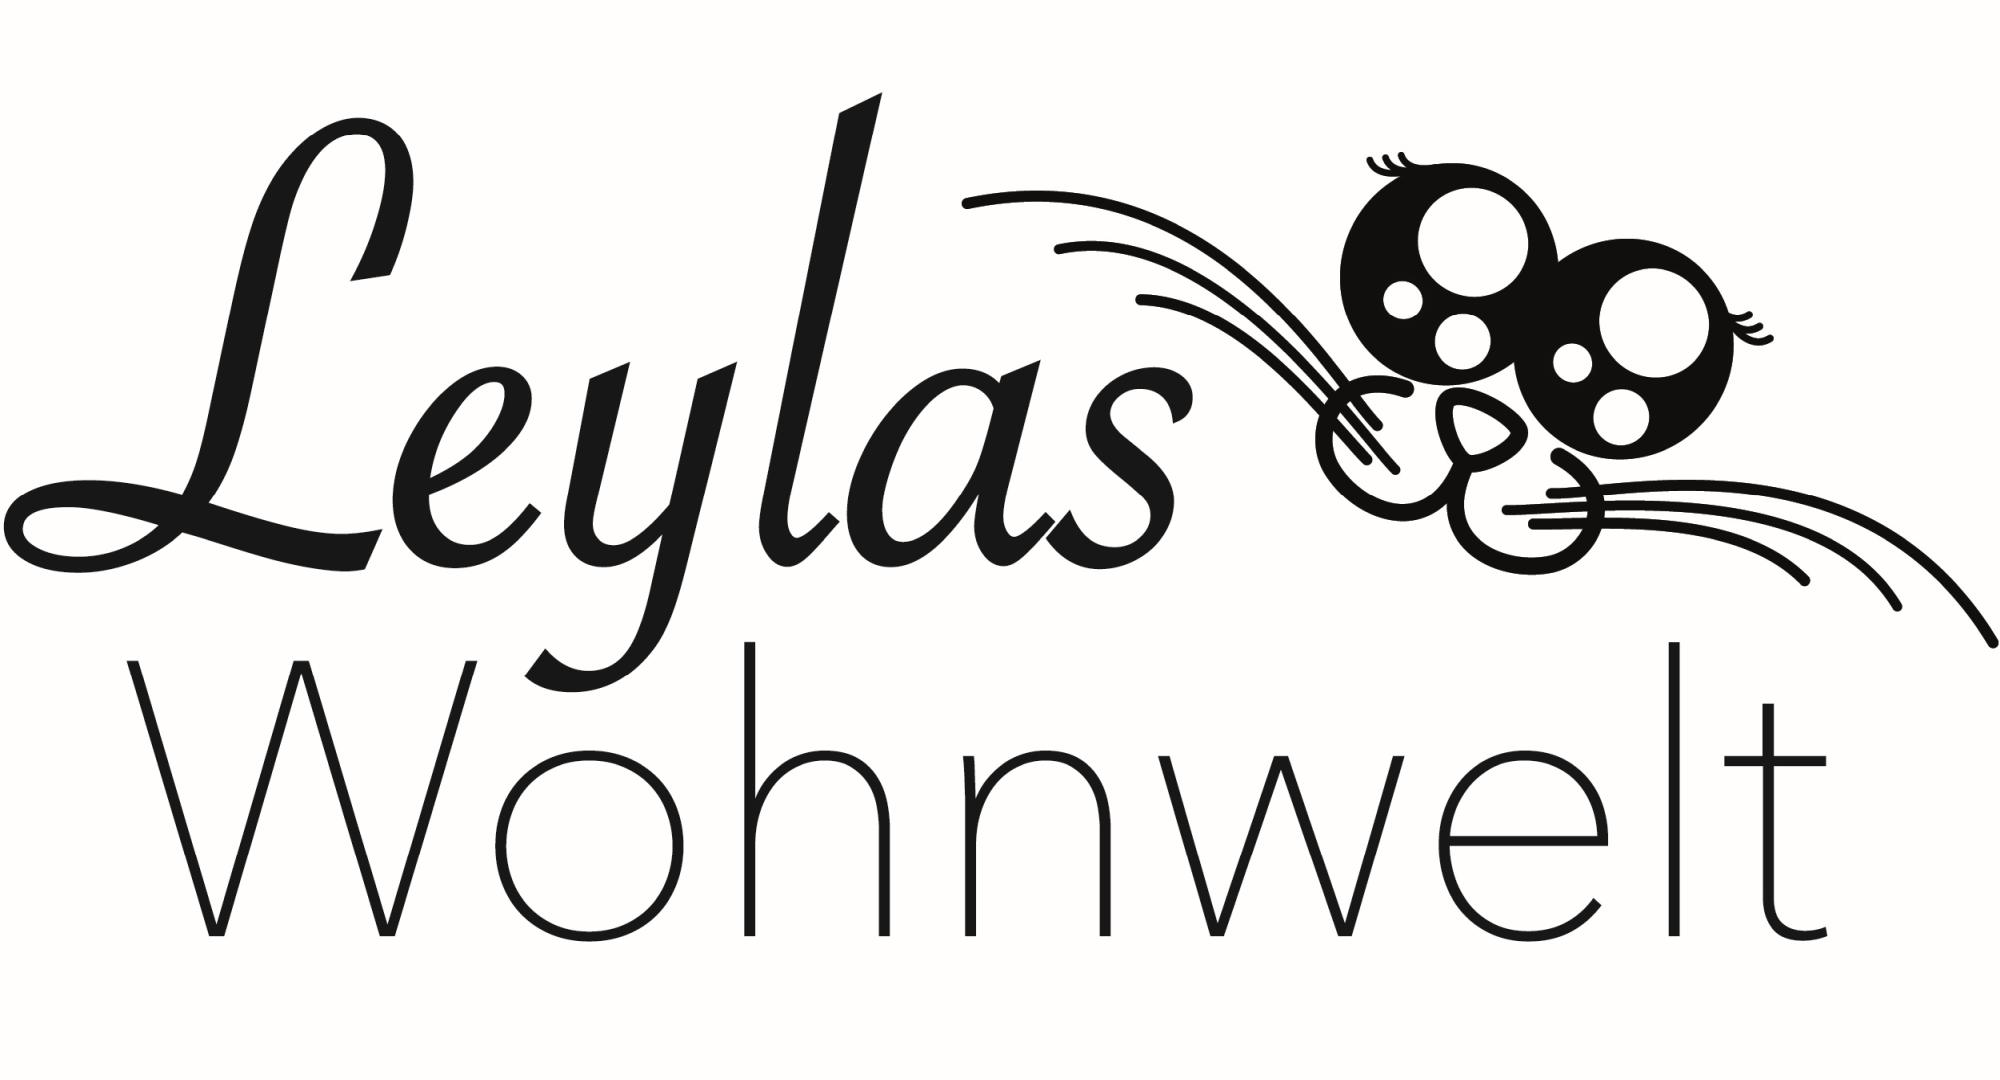 Leylas Wohnwelt